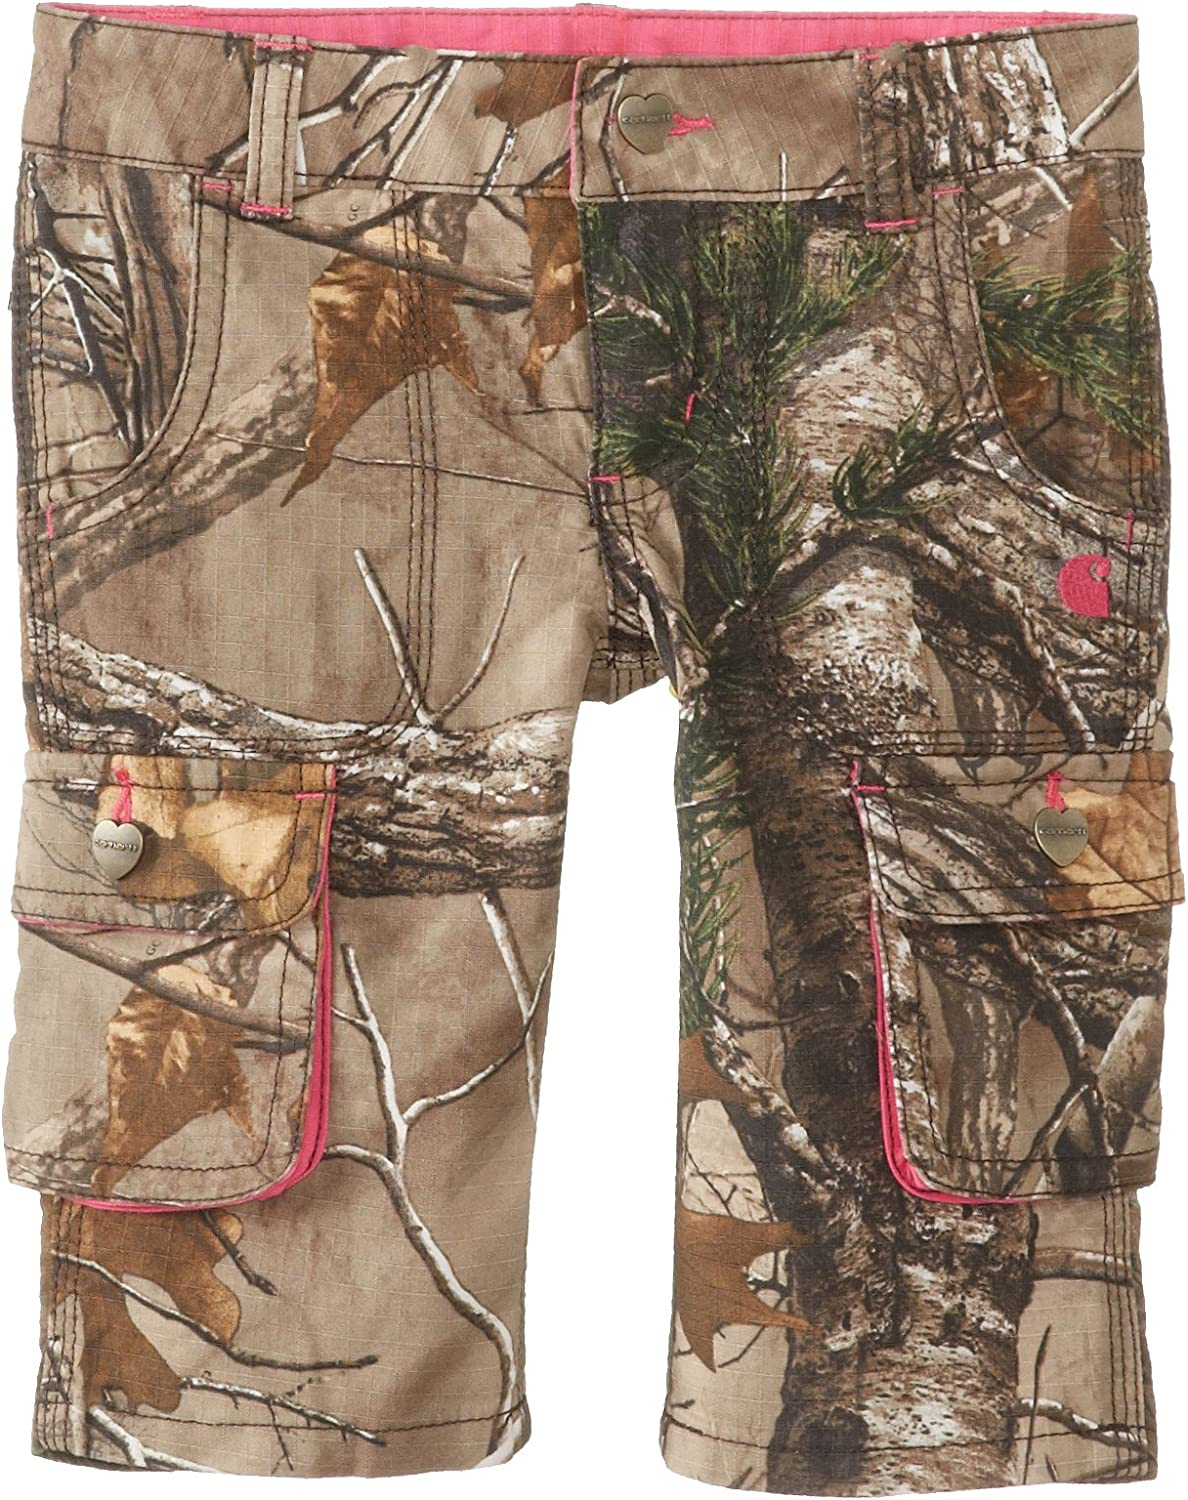 Carhartt Little Girls Washed Camo Cropped Pant Realtree Xtra 3T Carhartt Girls 2-6x